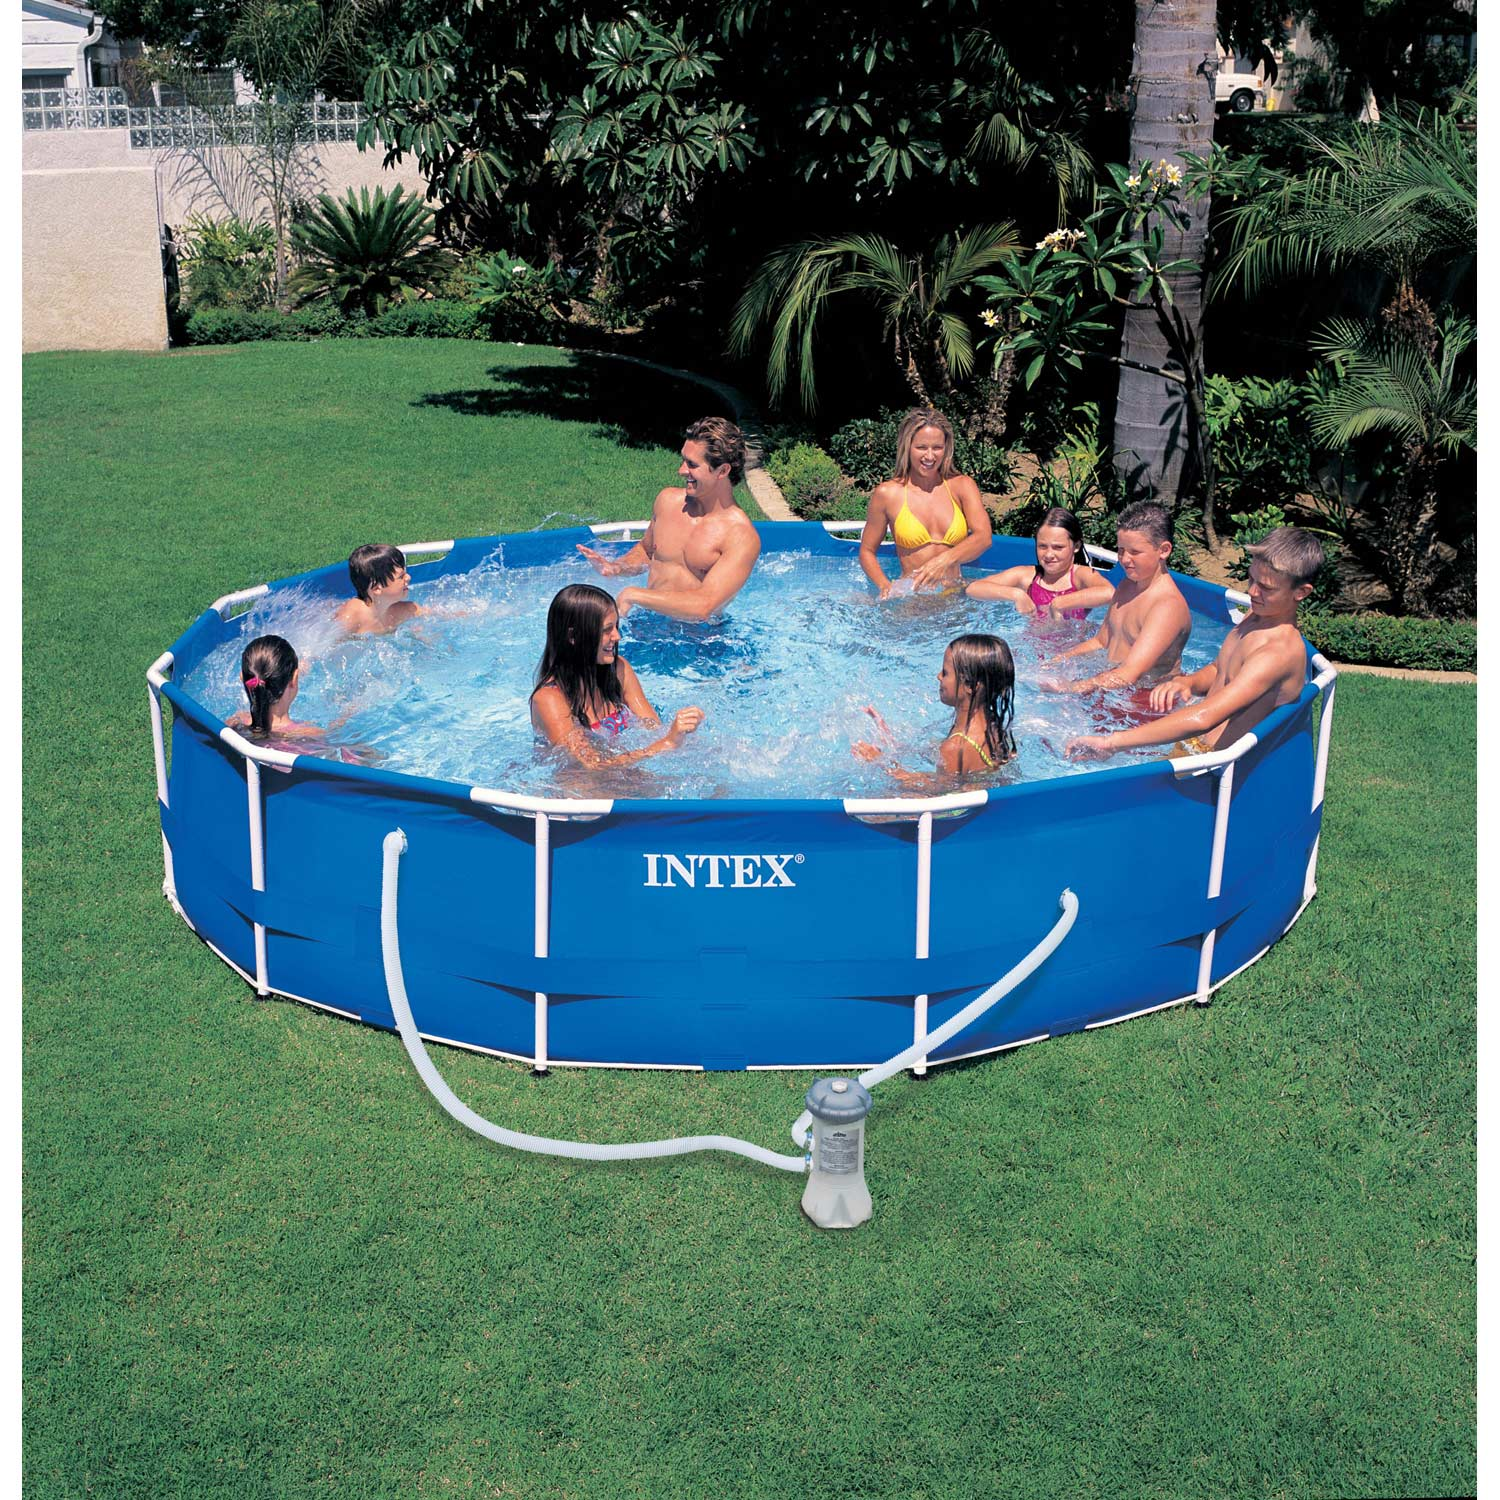 Piscine hors sol autoportante tubulaire metal frame intex for Piscine hors sol com